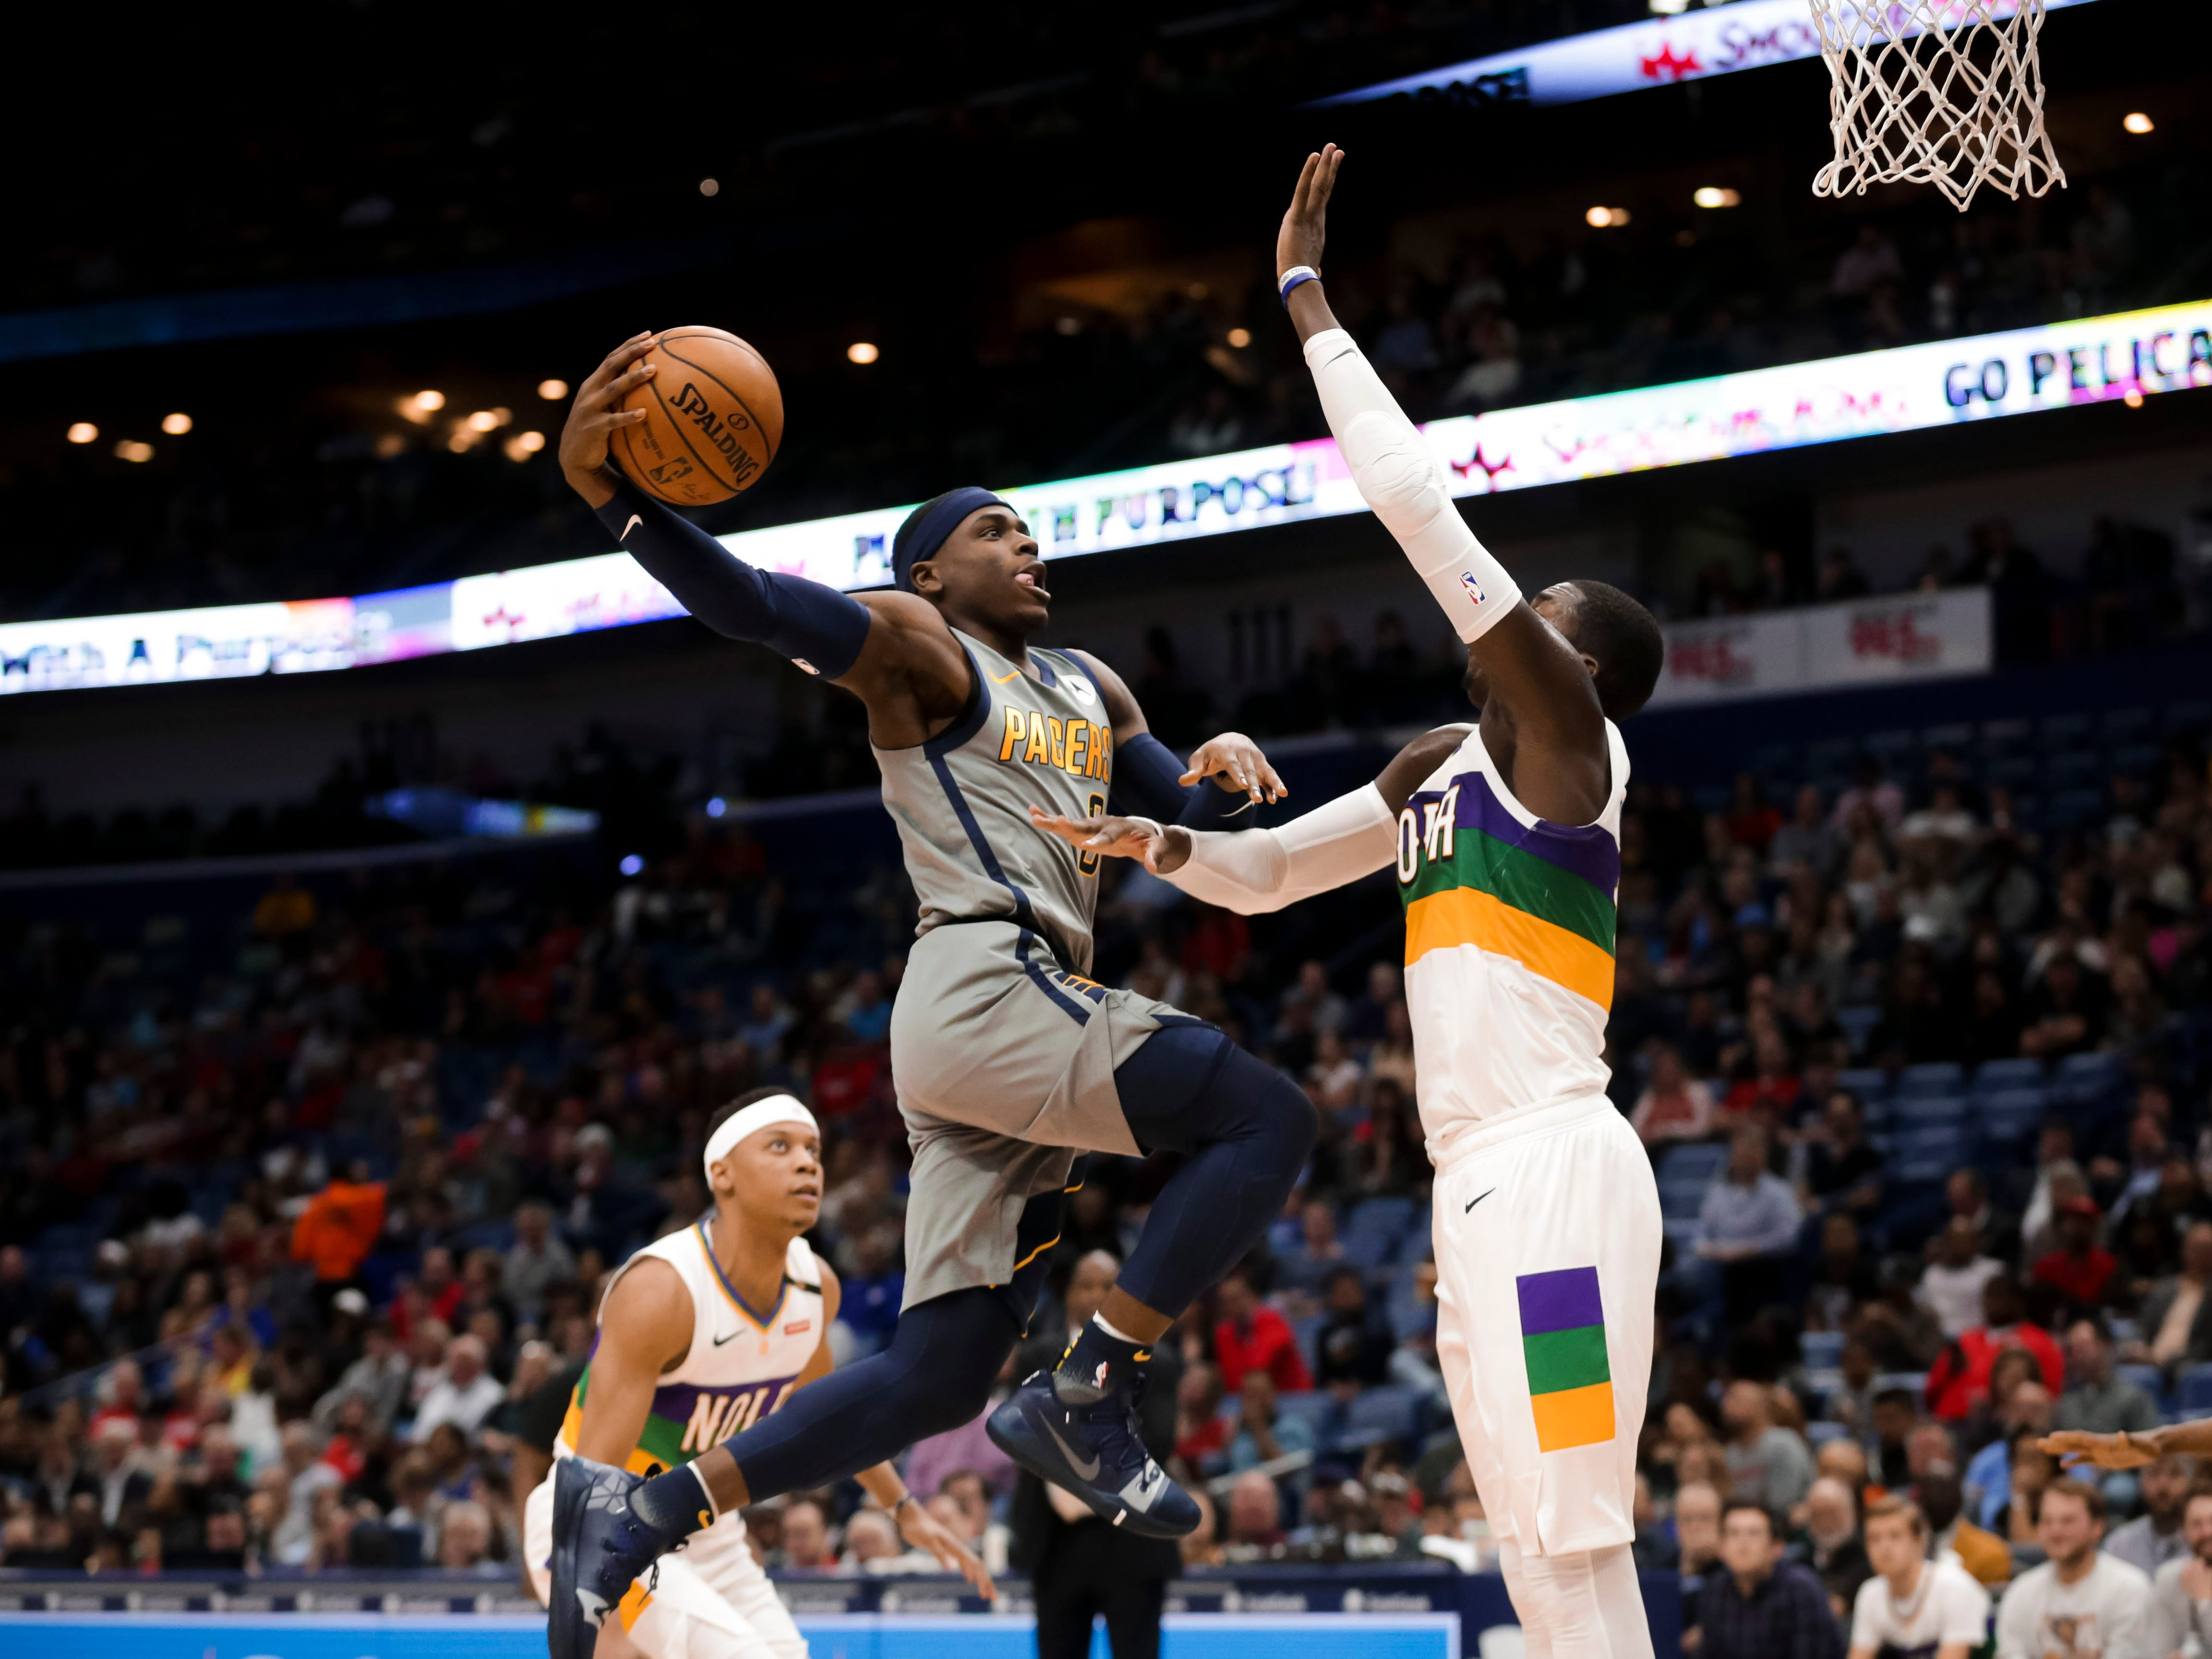 Feb 4, 2019; New Orleans, LA, USA; Indiana Pacers guard Aaron Holiday (3) attempts a dunk New Orleans Pelicans forward Cheick Diallo (13) during the first quarter at the Smoothie King Center.